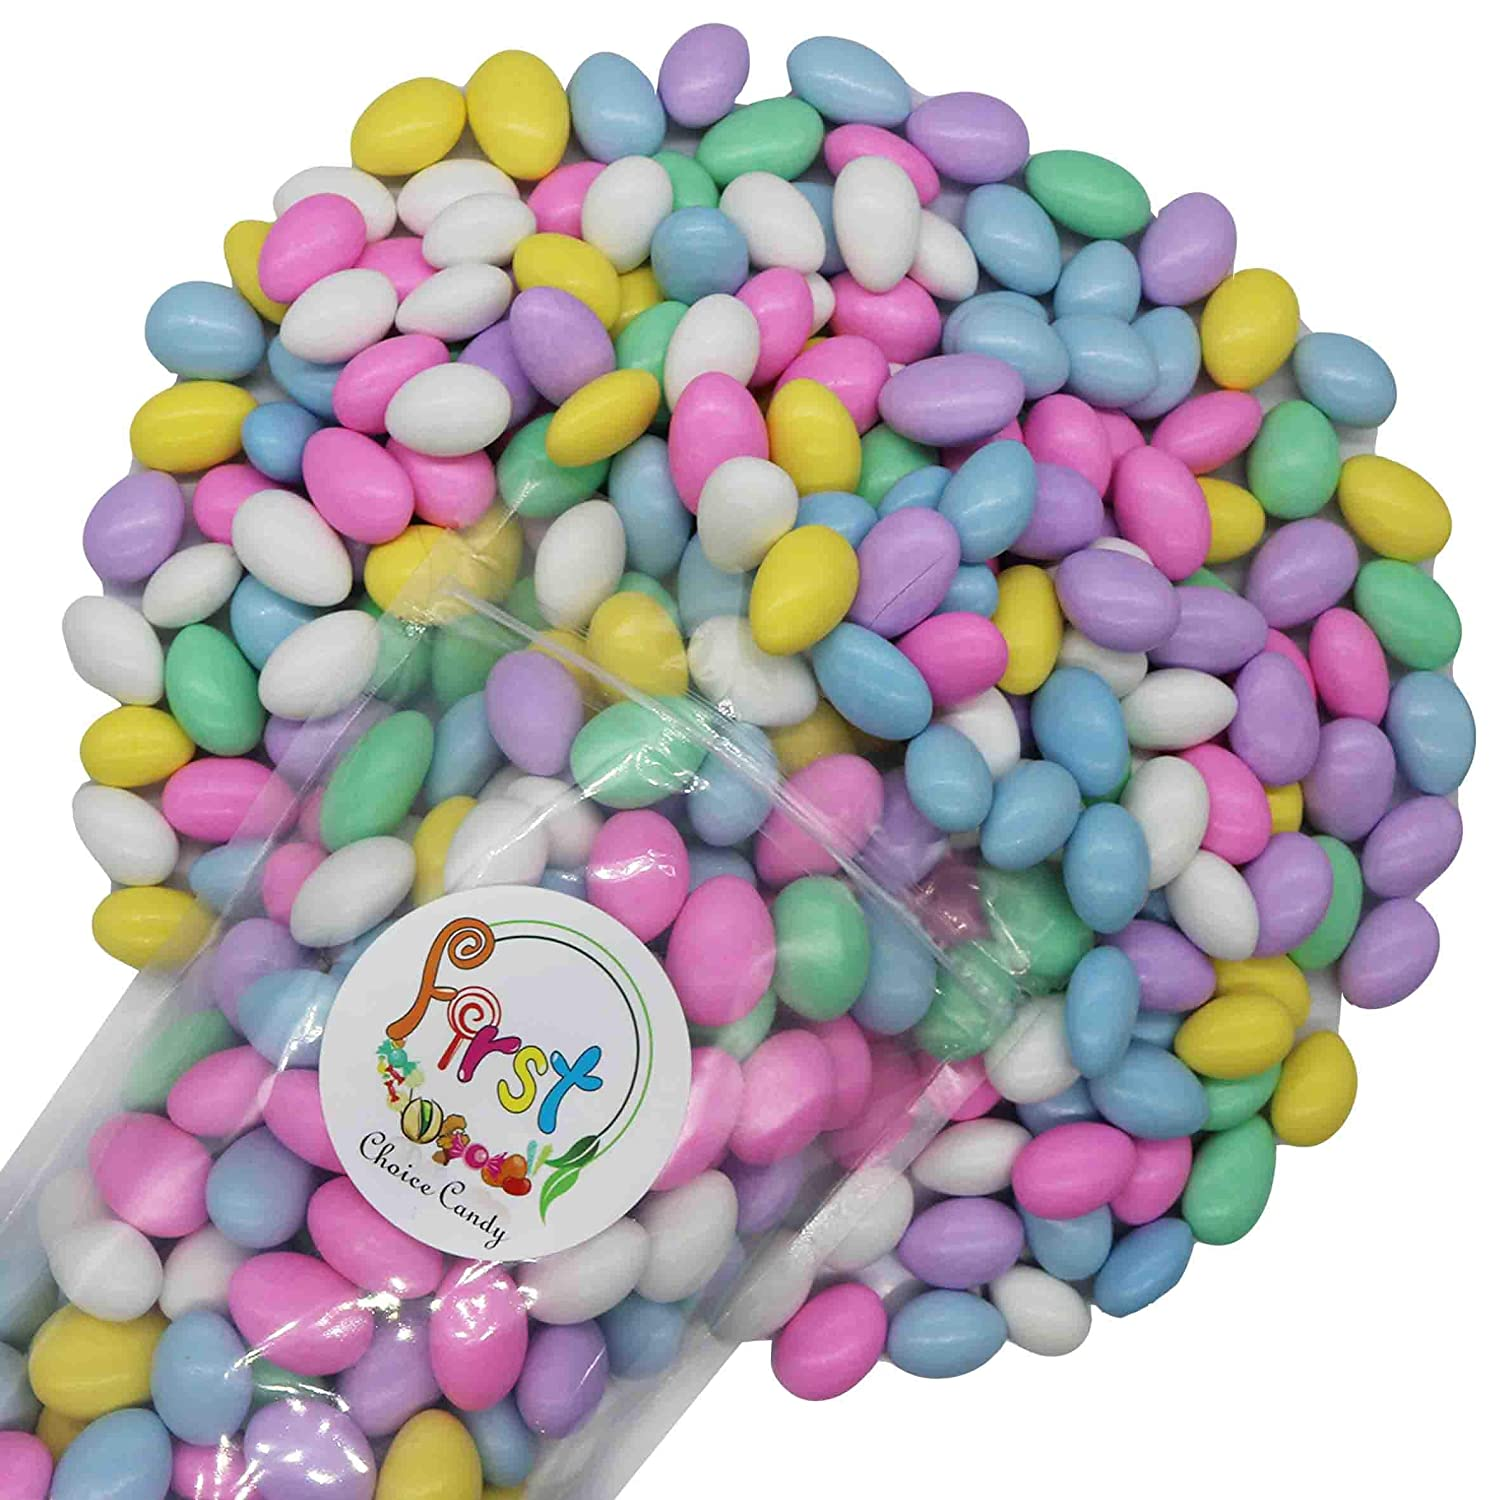 FirstChoiceCandy Jordan Almonds Jacksonville Mall 10 Pound Color Assorted Pastel Max 76% OFF